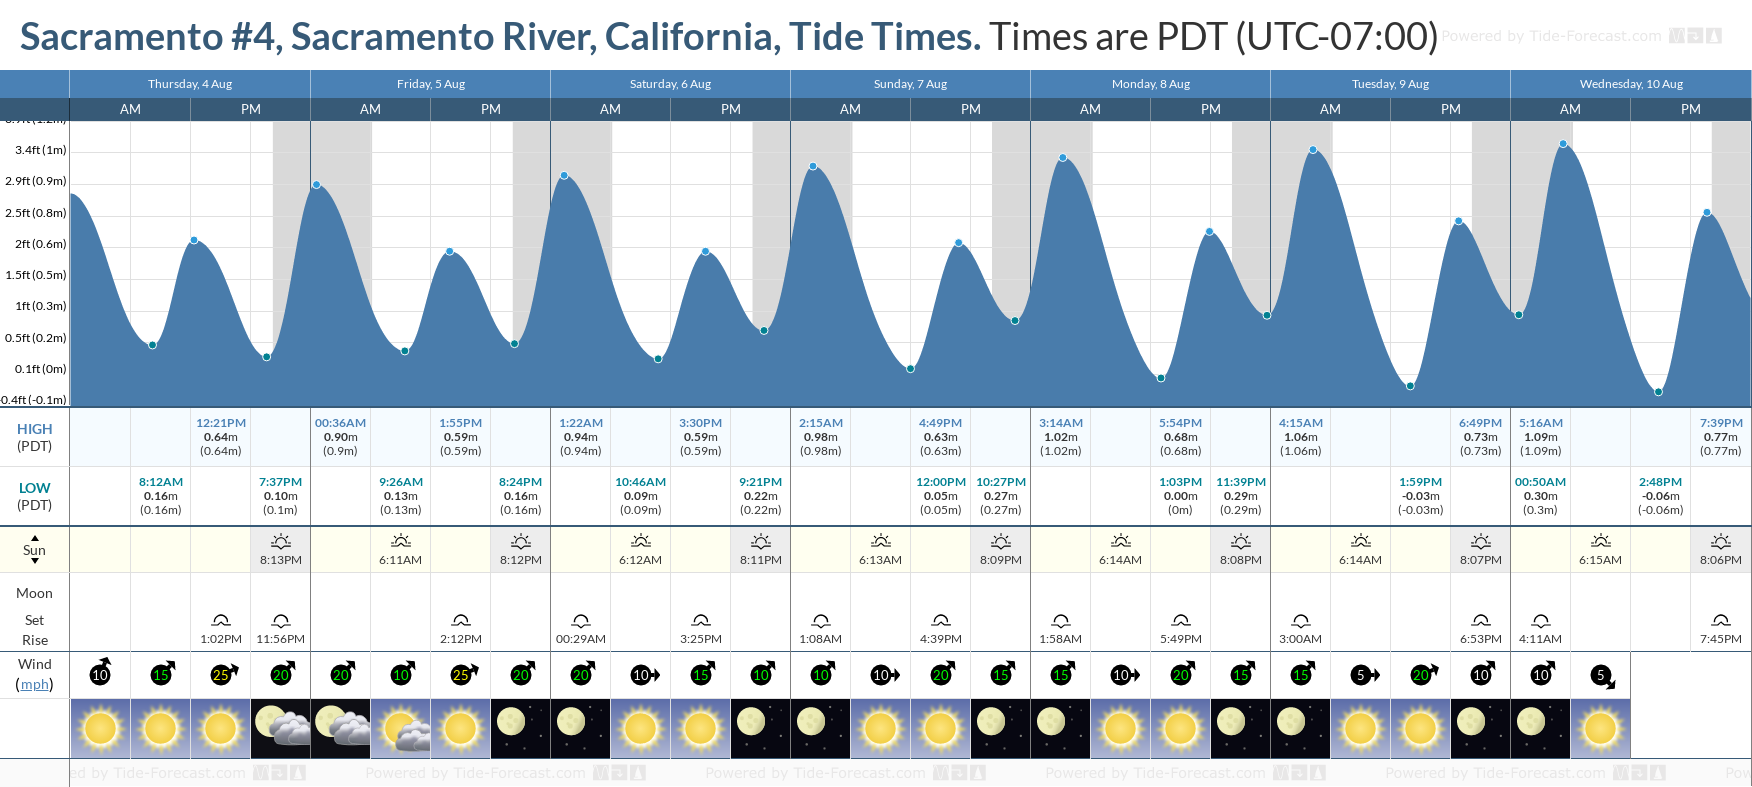 Sacramento #4, Sacramento River, California Tide Chart including high and low tide tide times for the next 7 days